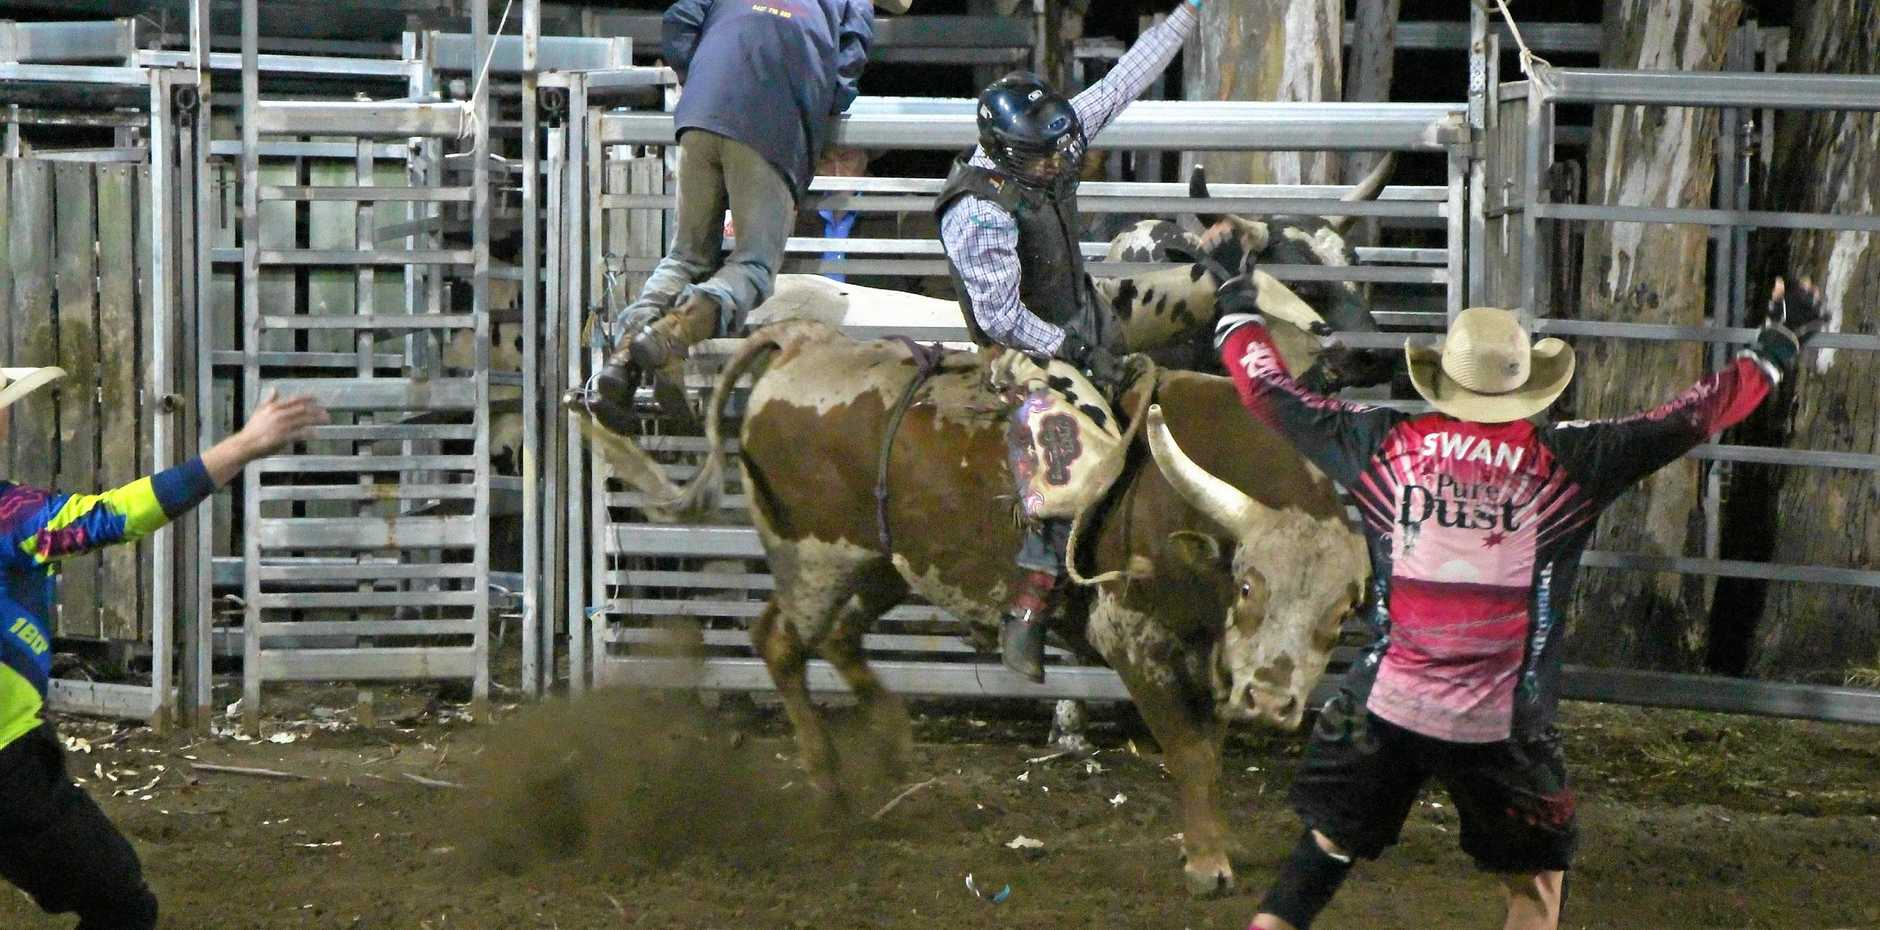 TOP COWBOY: Lane Mellers from Mundubbera took first place in the Novice Bullride.